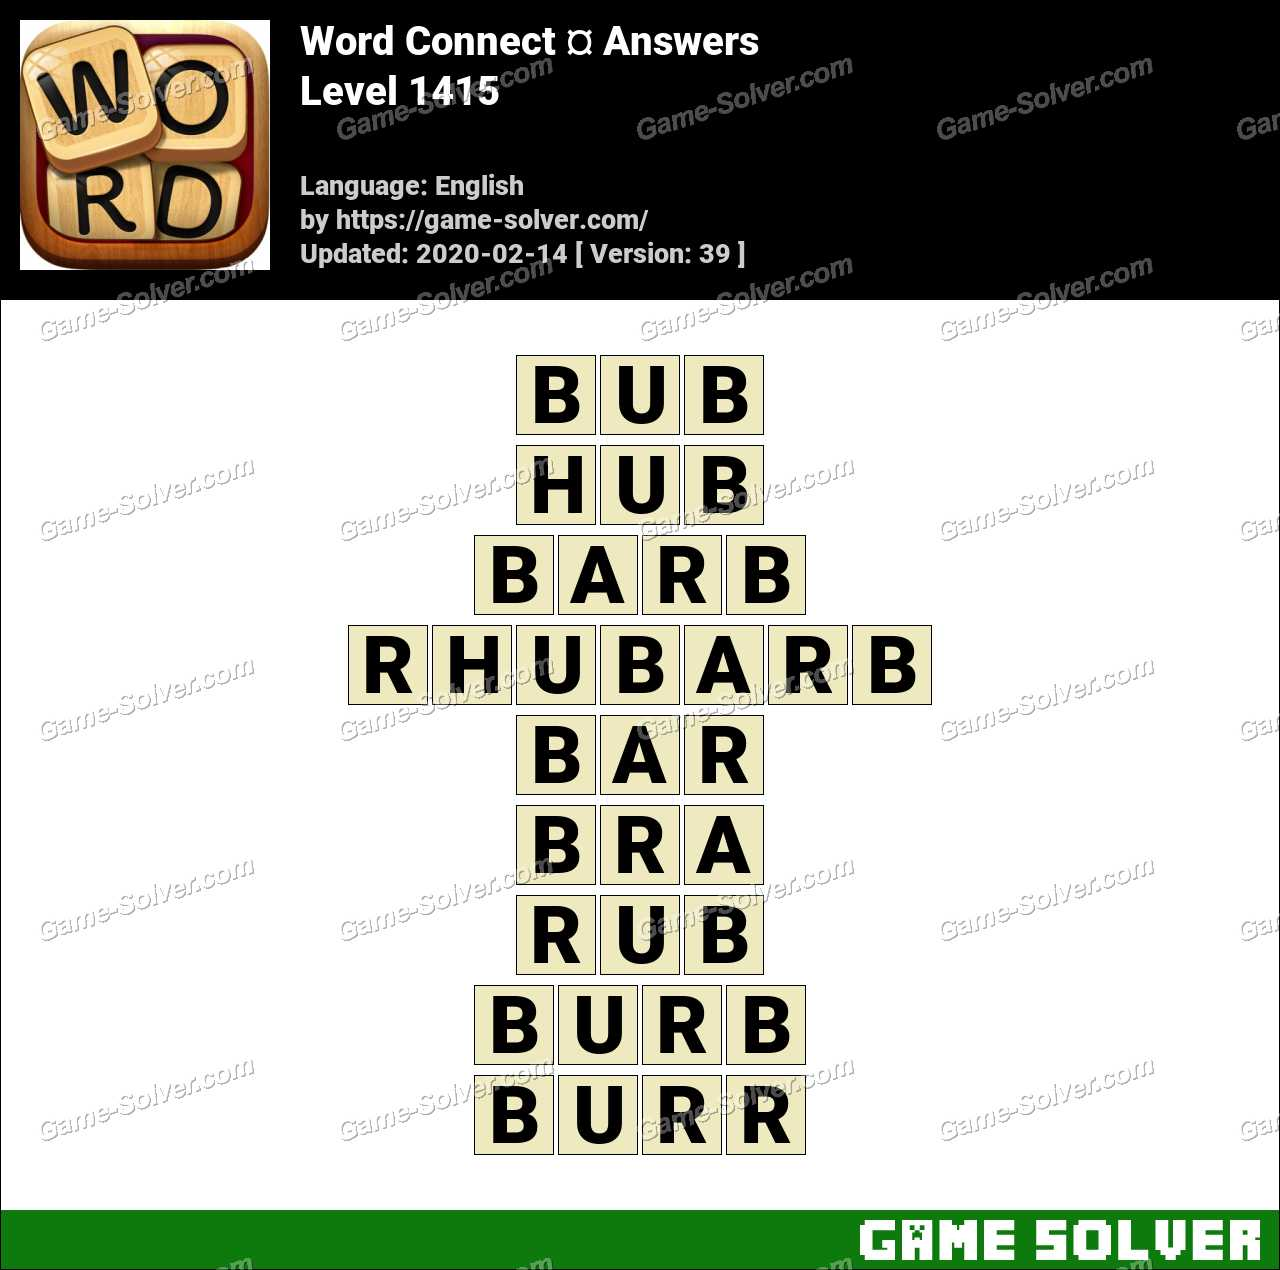 Word Connect Level 1415 Answers